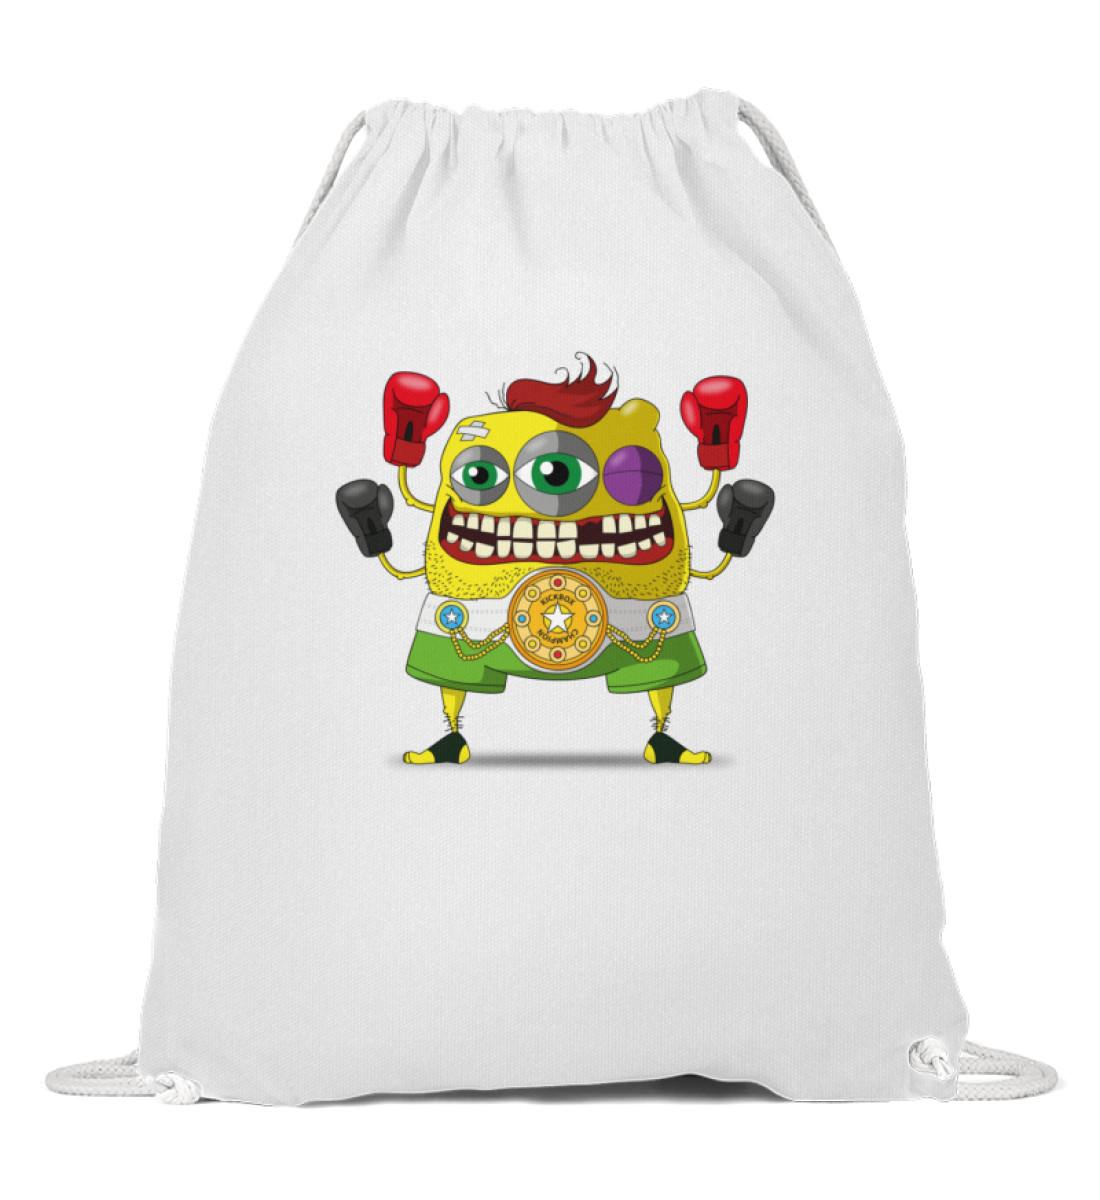 Gymsack - Los-Ronos berlin-monster-art berlinmonsterart sport tasche